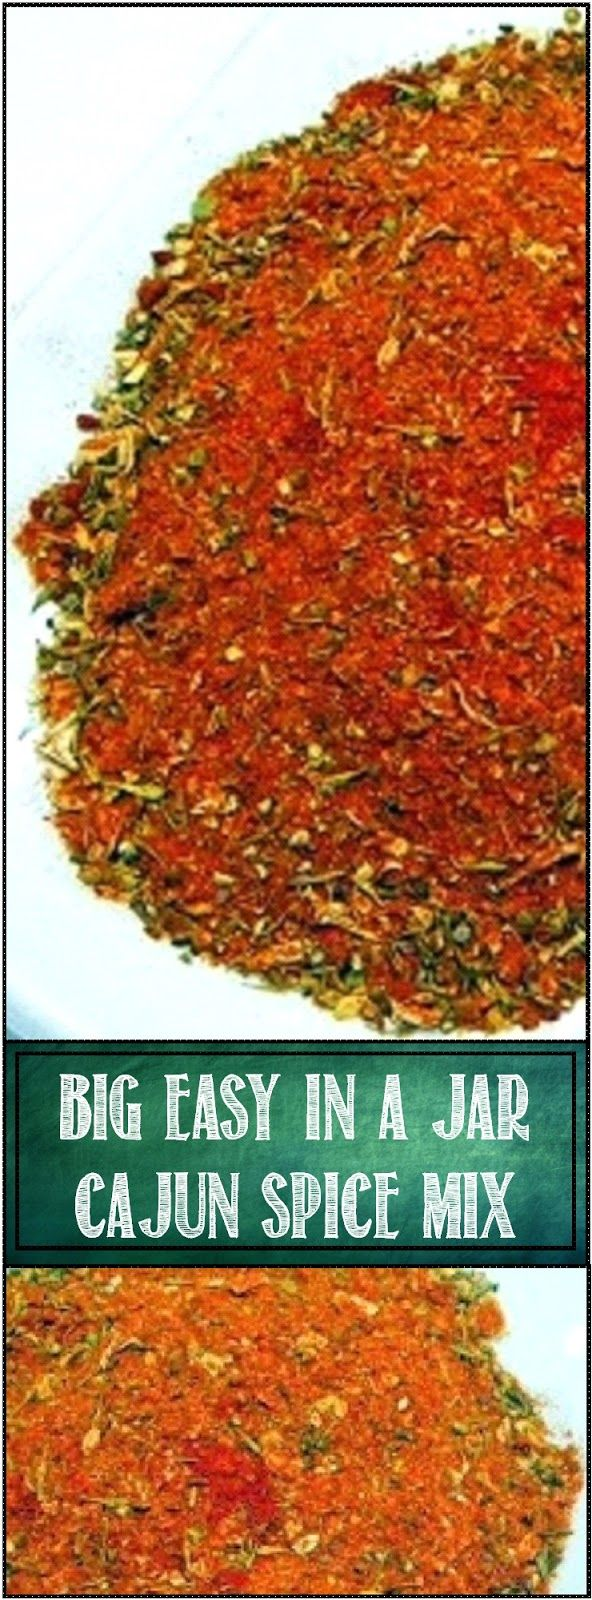 Big Easy in a Jar Spice Mix... You really ought to learn to mix your own spices. MUCH CHEAPER, easy and you control the amount of heat (important in a Cajun mix like this) as well as salt. IMPOSSIBLE to get a low salt spice mix unless you mix your own! Enjoy!